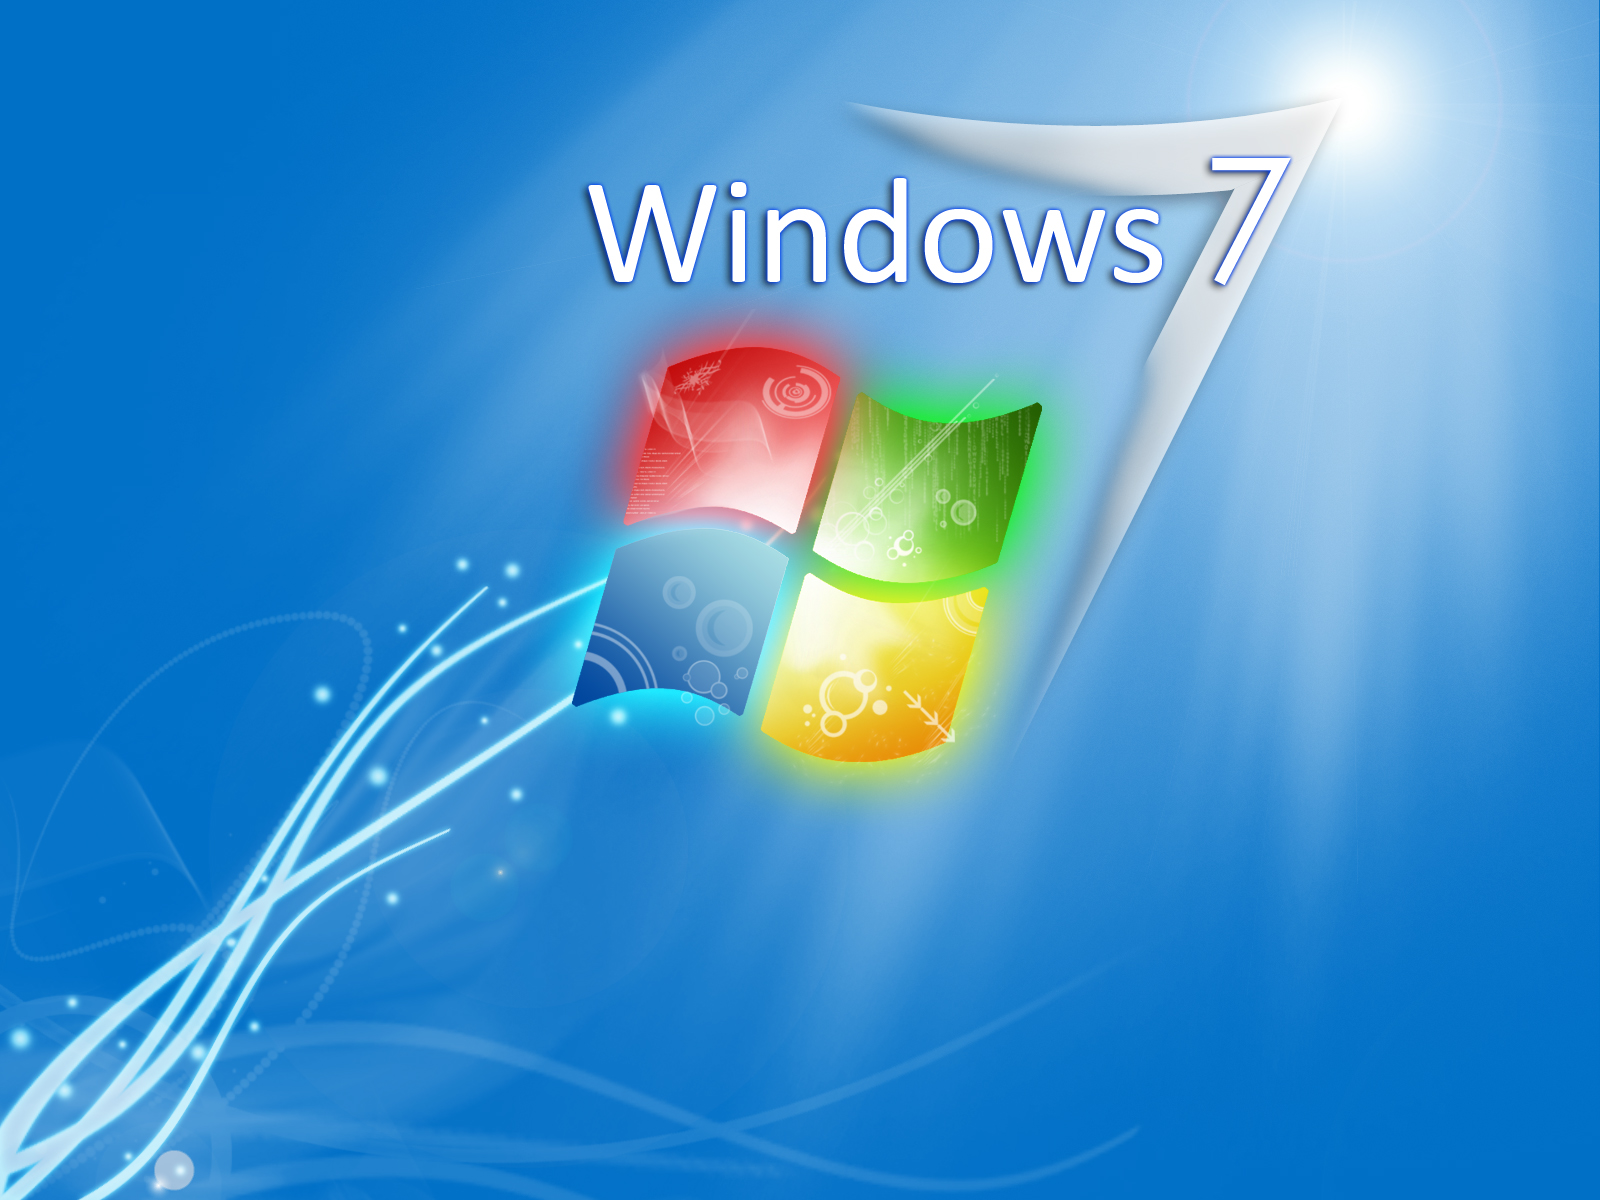 window 7 HD Wallpaper: HD Wallpapers of Windows 7